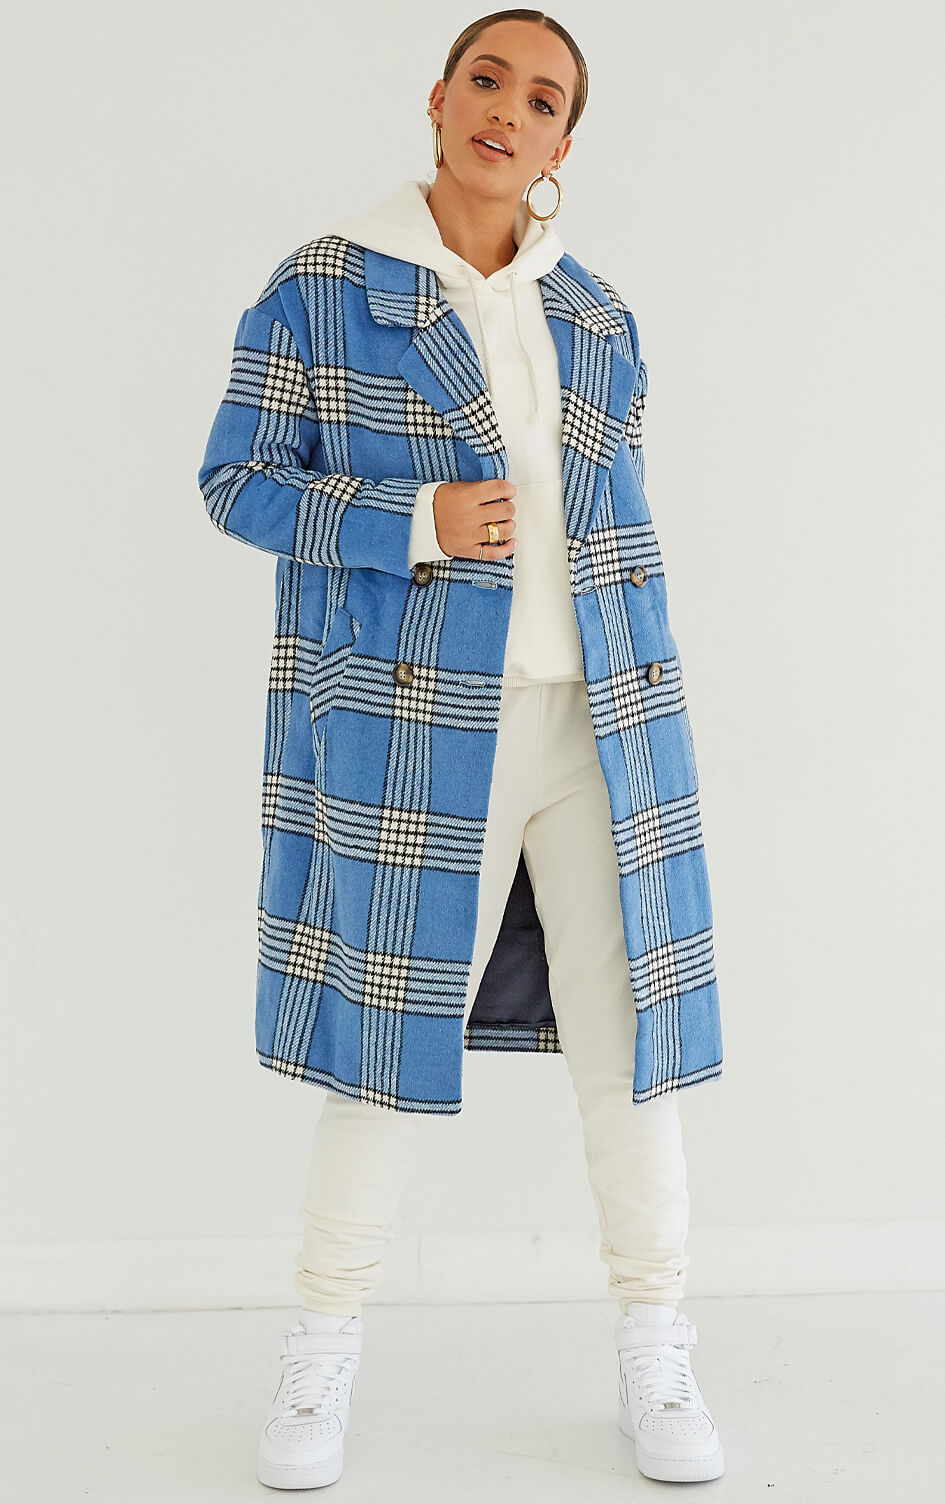 shop-dana-scott-frnch-blue-sandra-plaid-coat